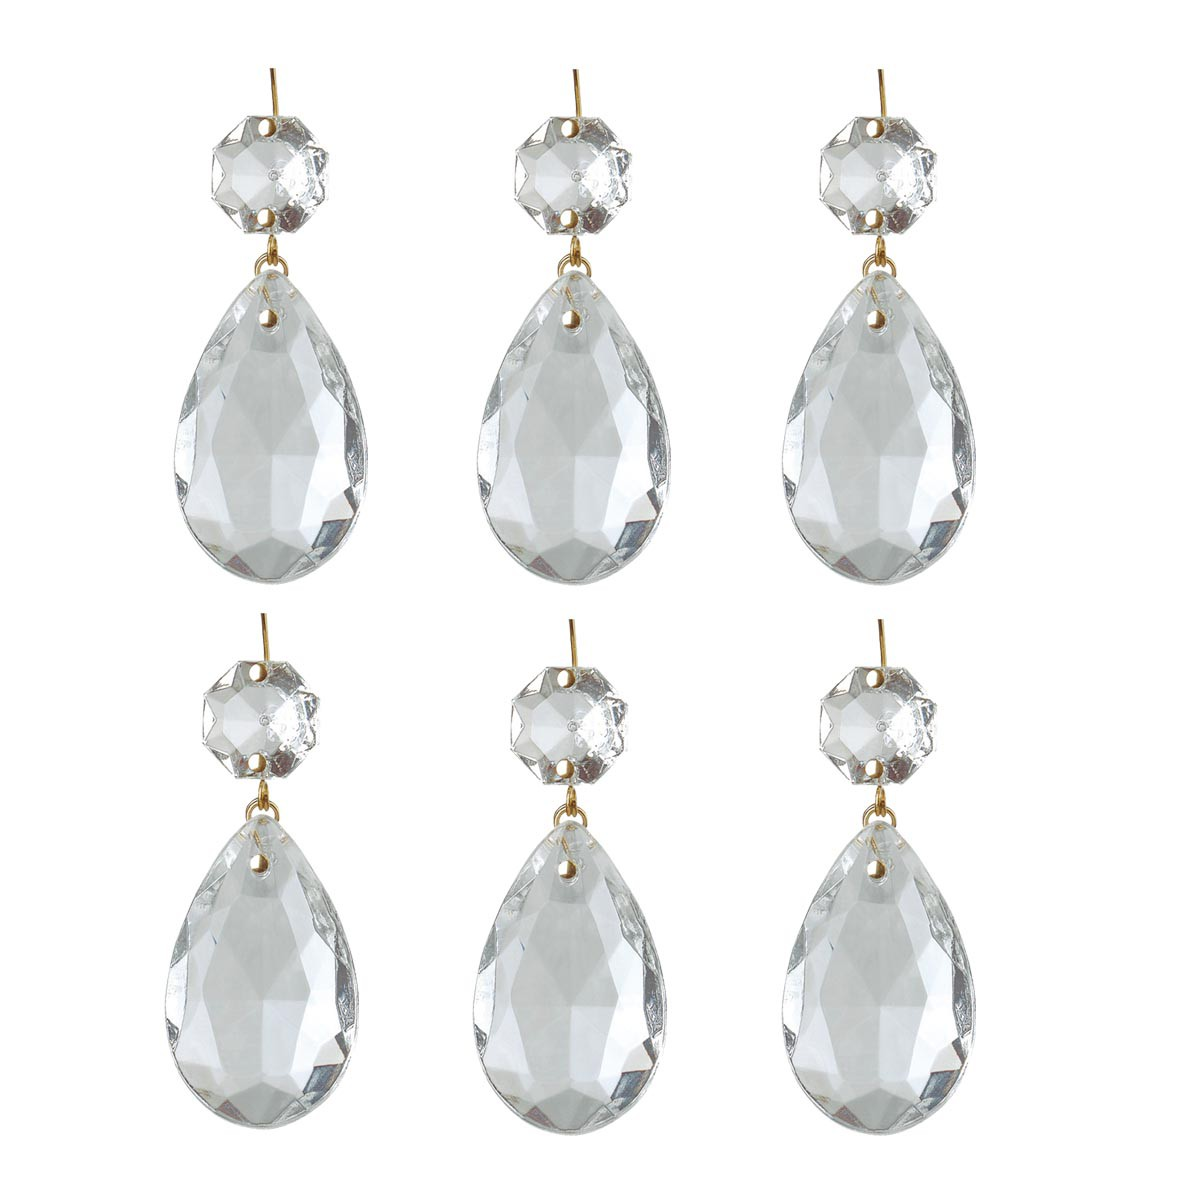 6 Prisms Clear Glass Chandelier Pendant Replacement 1 5